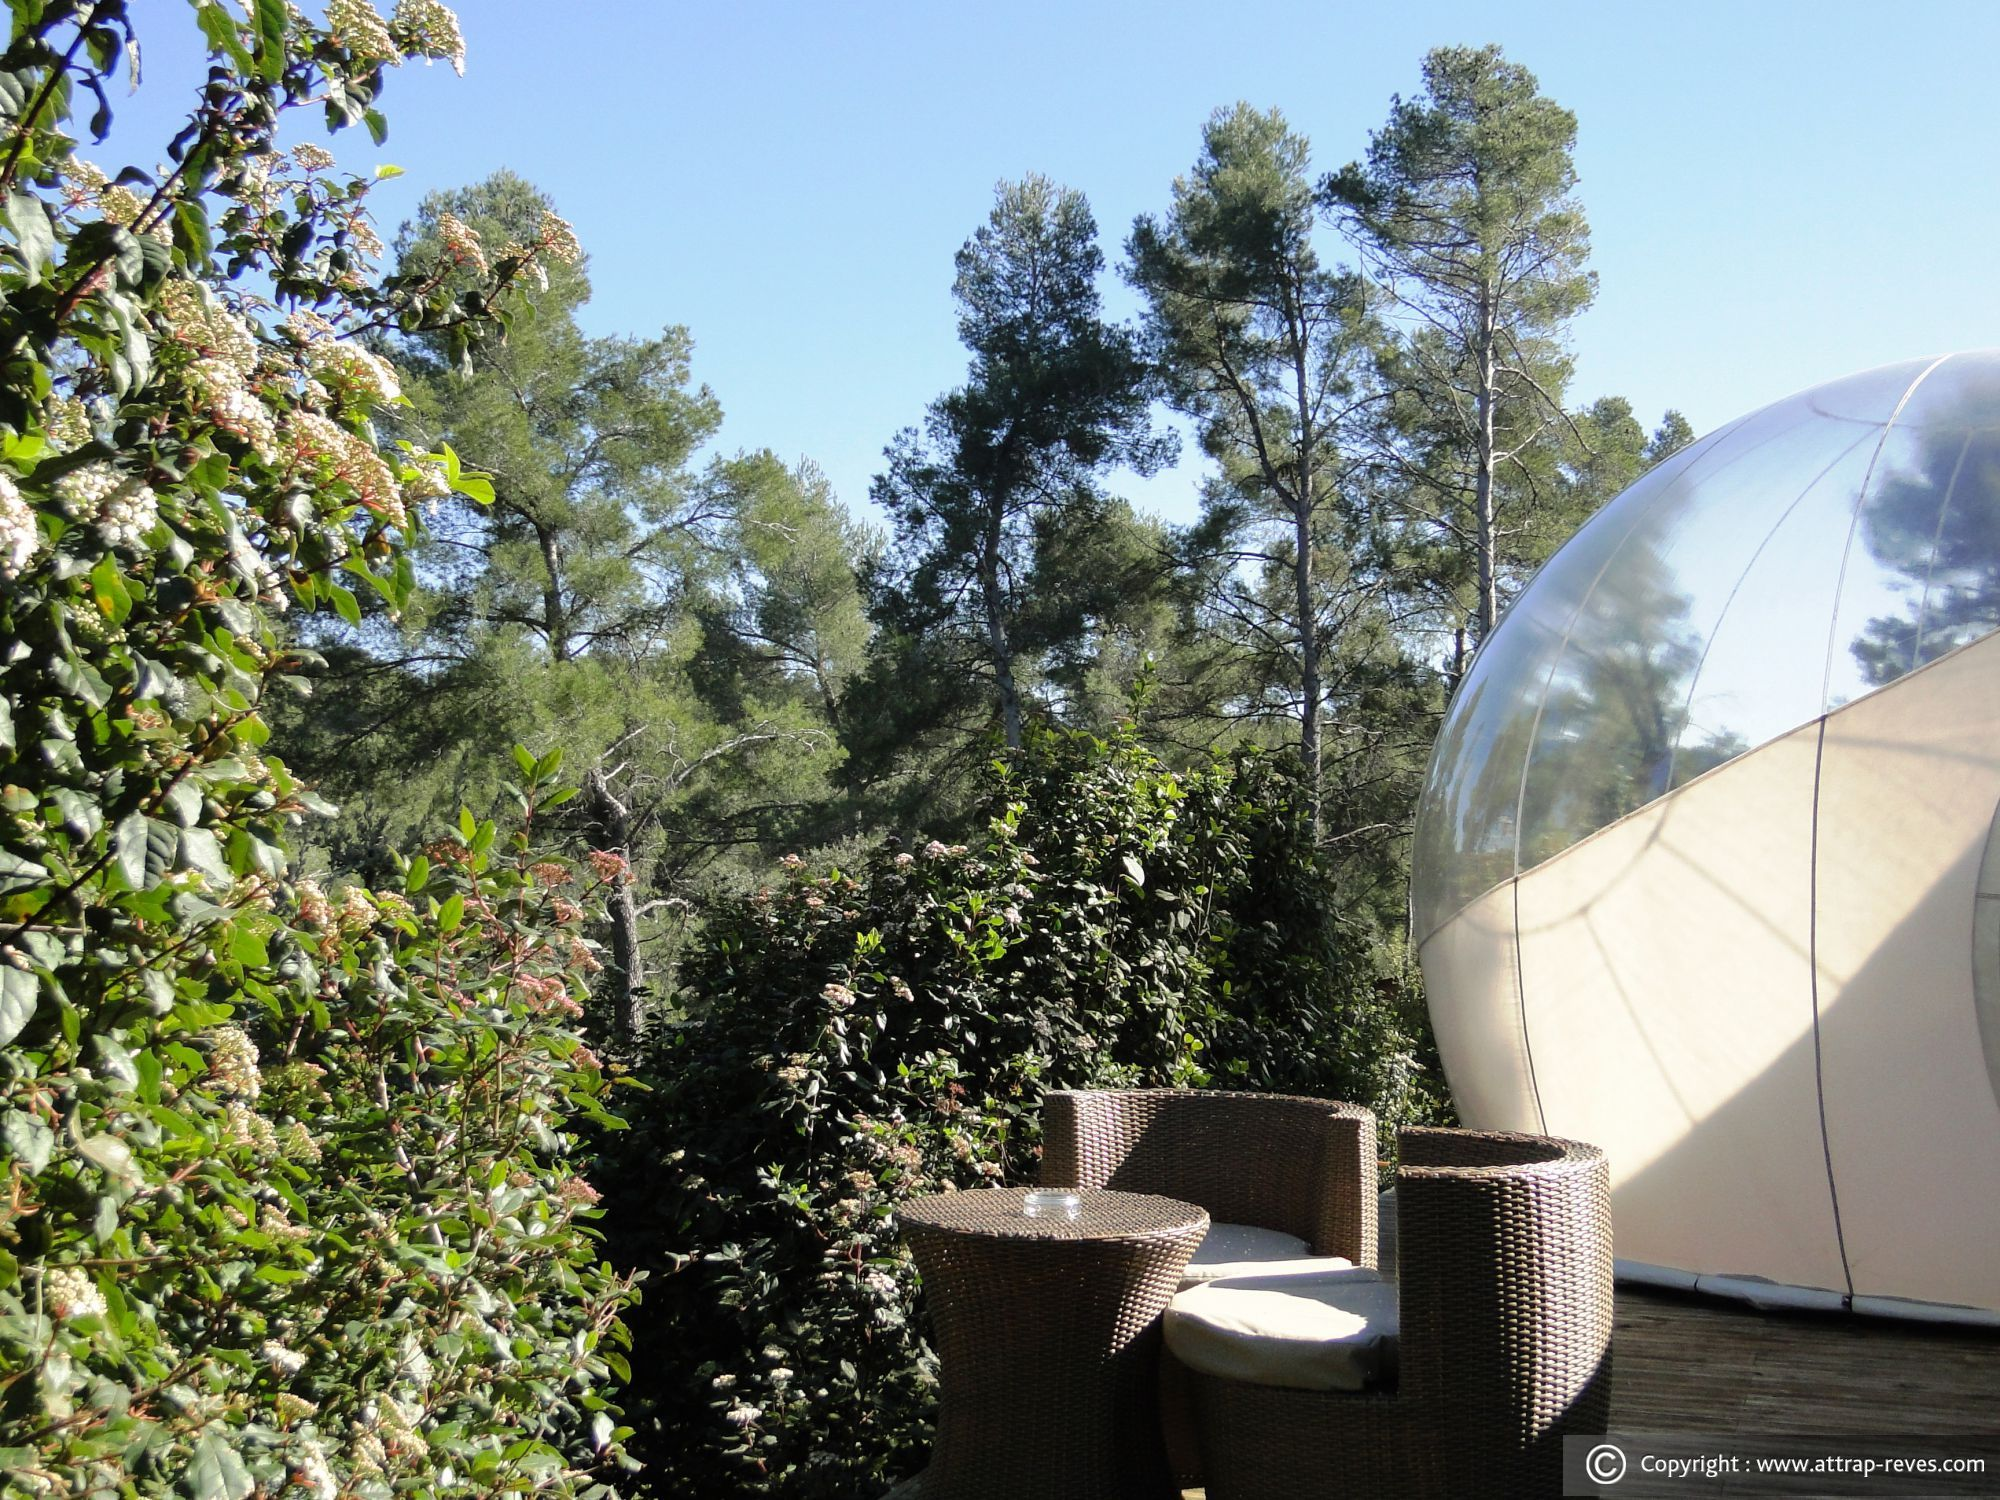 ATTRAP'RÊVES BUBBLE HOTEL at Allauch for an unusual night ...